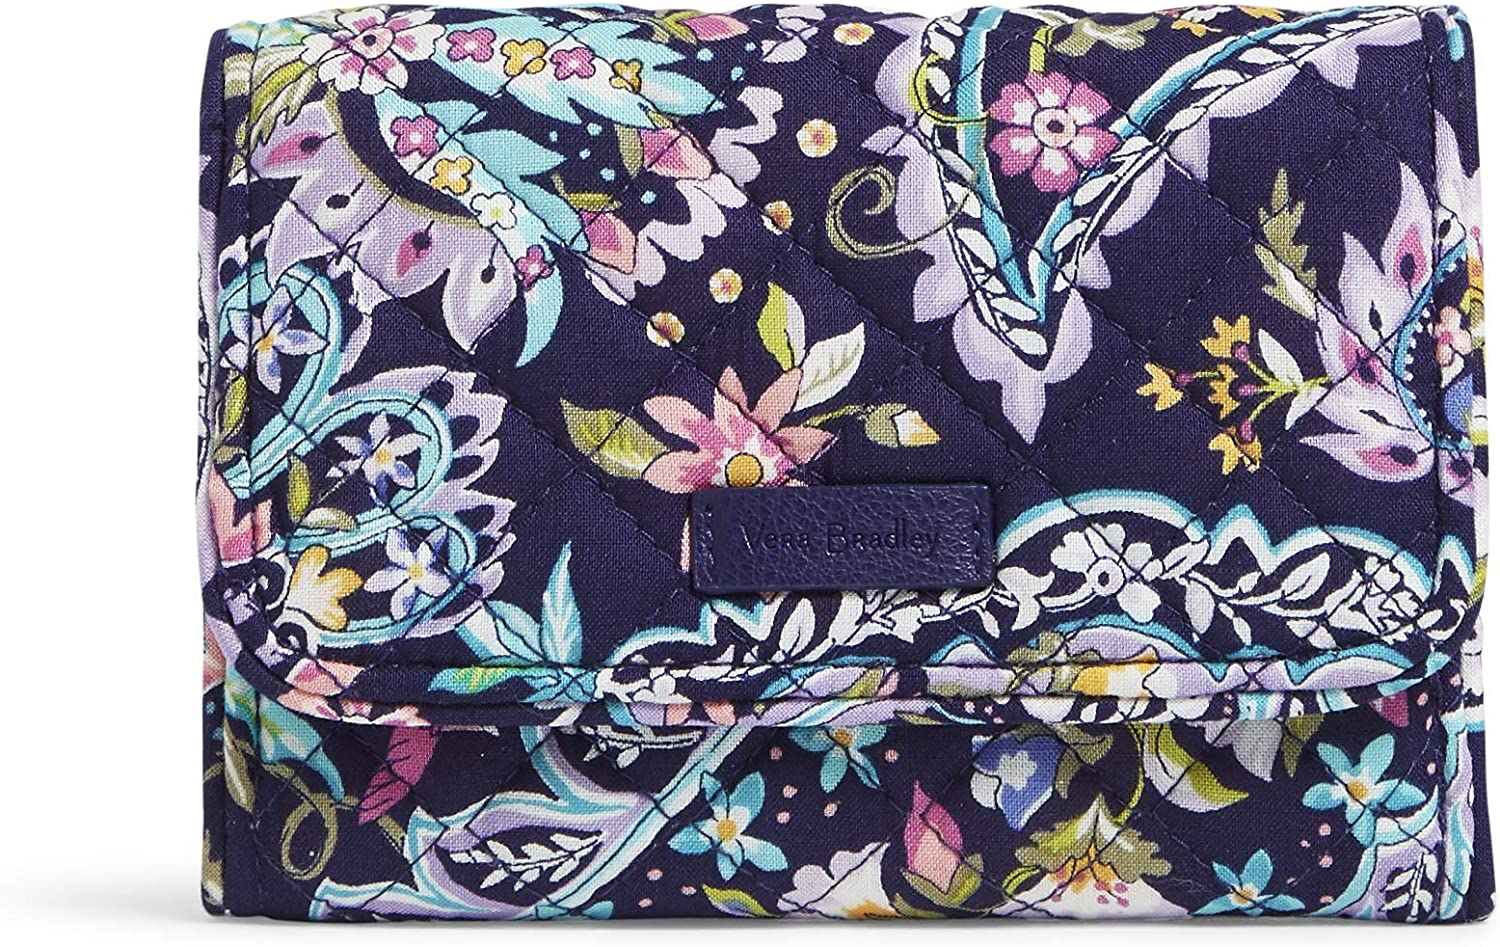 Vera Bradley Women's Cotton Riley Compact Wallet with RFID Protection, French Paisley, One Size : Clothing, Shoes & Jewelry